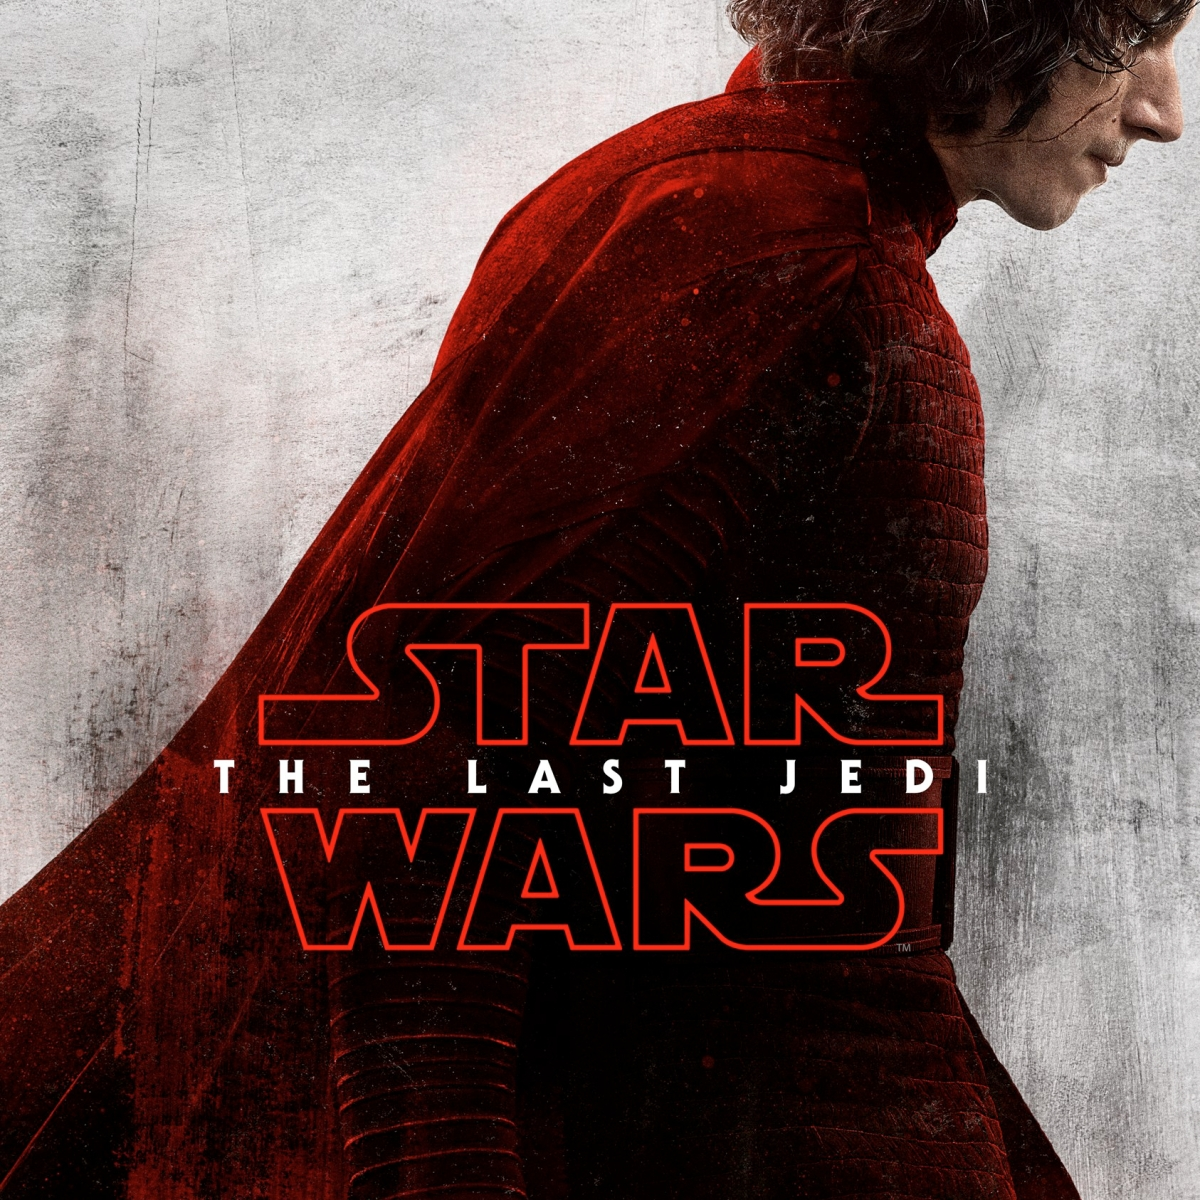 Star Wars:The Last Jedi Review – Characterisation And Logic Replace Crowd Pleasers